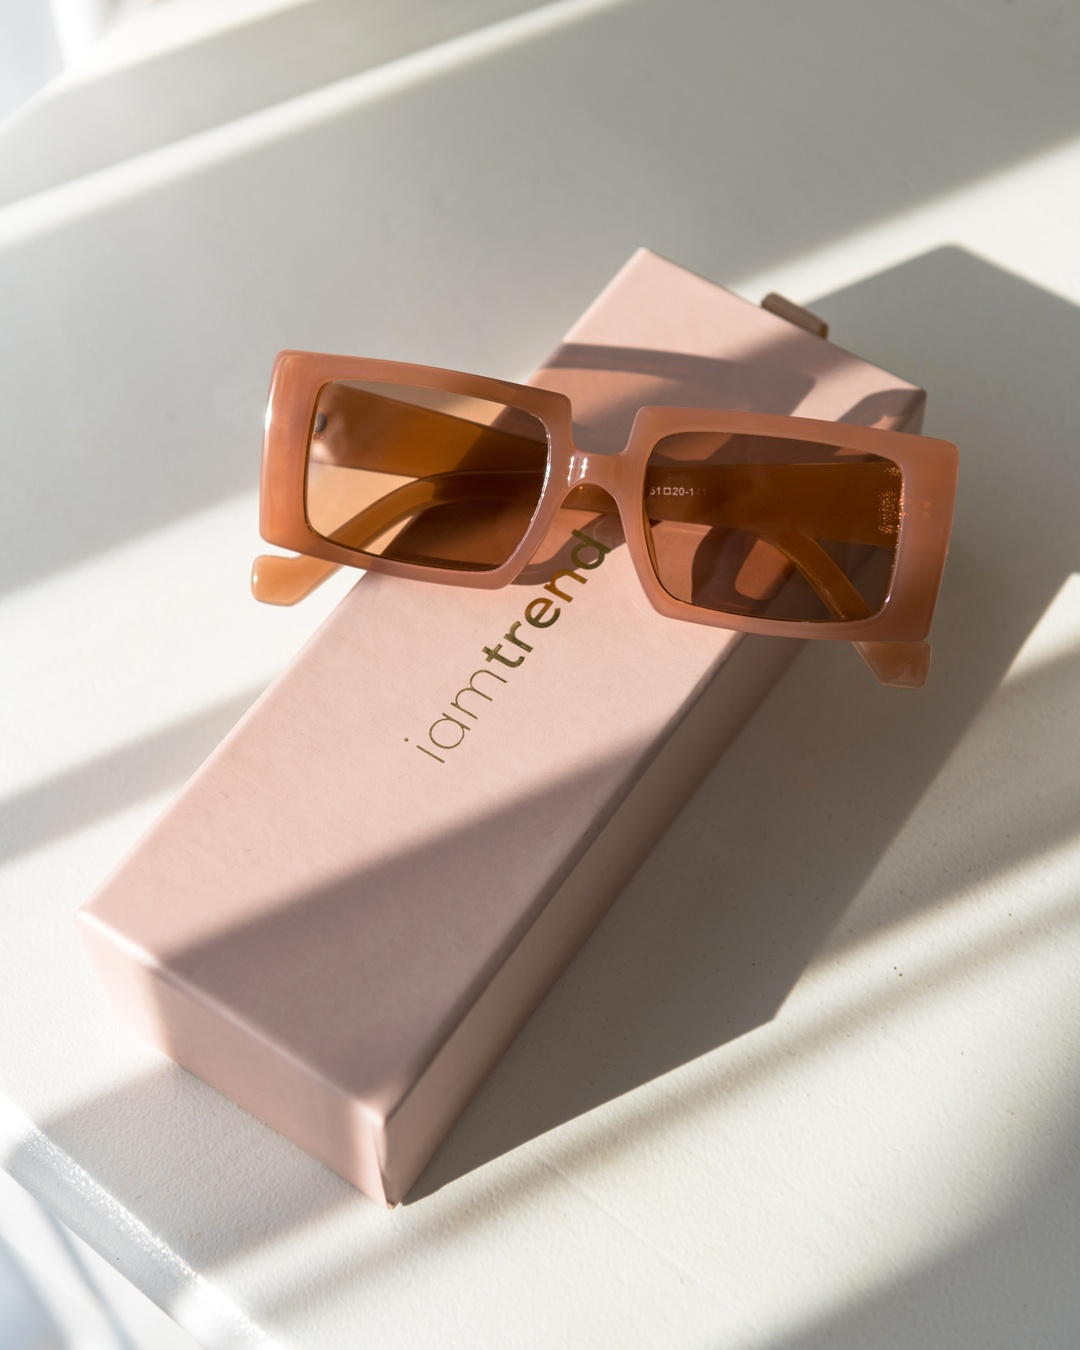 Rectangular sunglasses with a terracotta frame and lens tint sits on a pink iamtrend keepsake box.